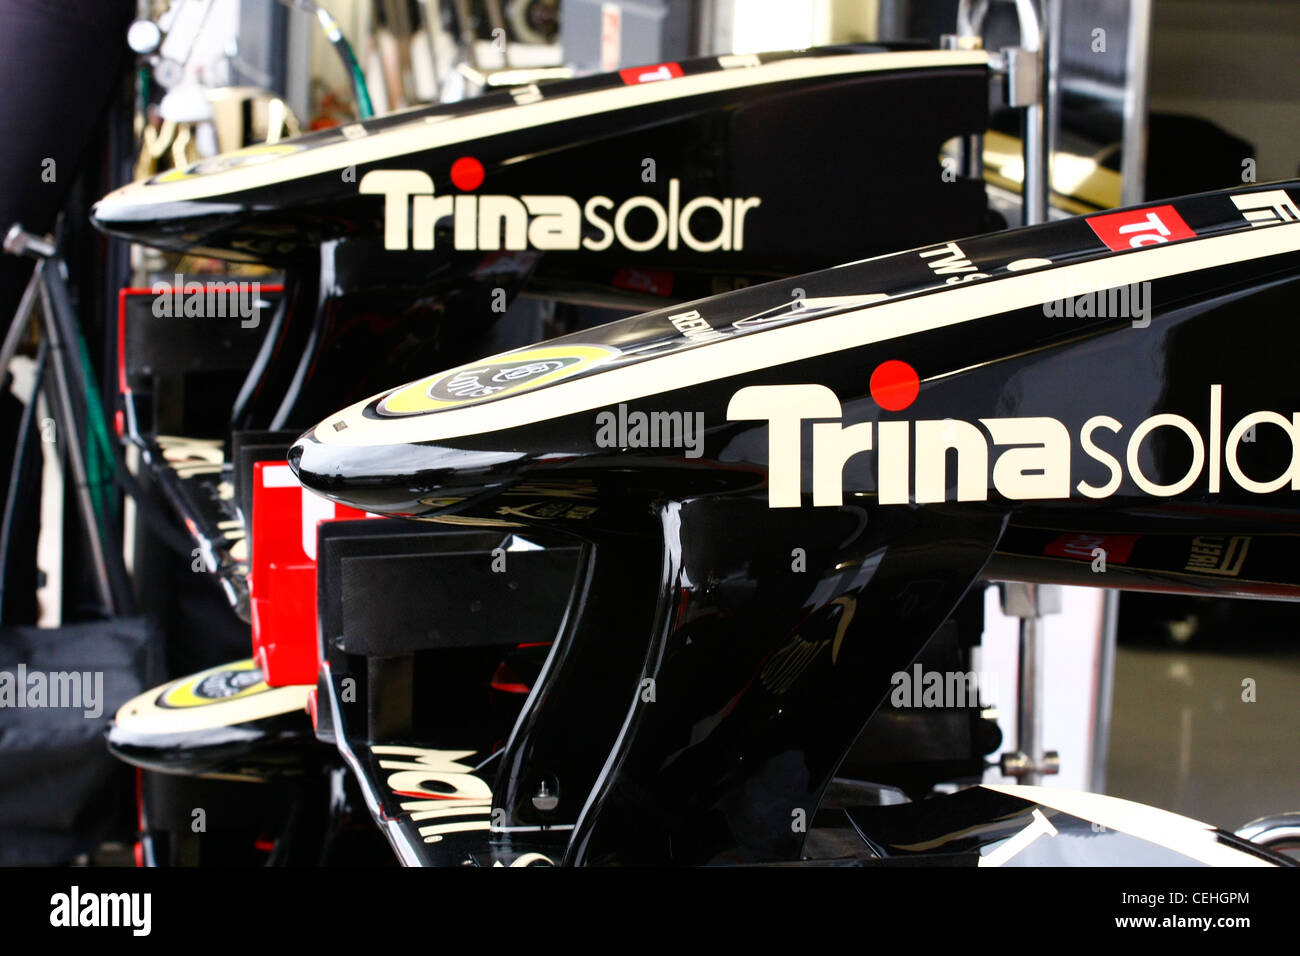 f1, pit lane, Silverstone, grand prix, - Stock Image